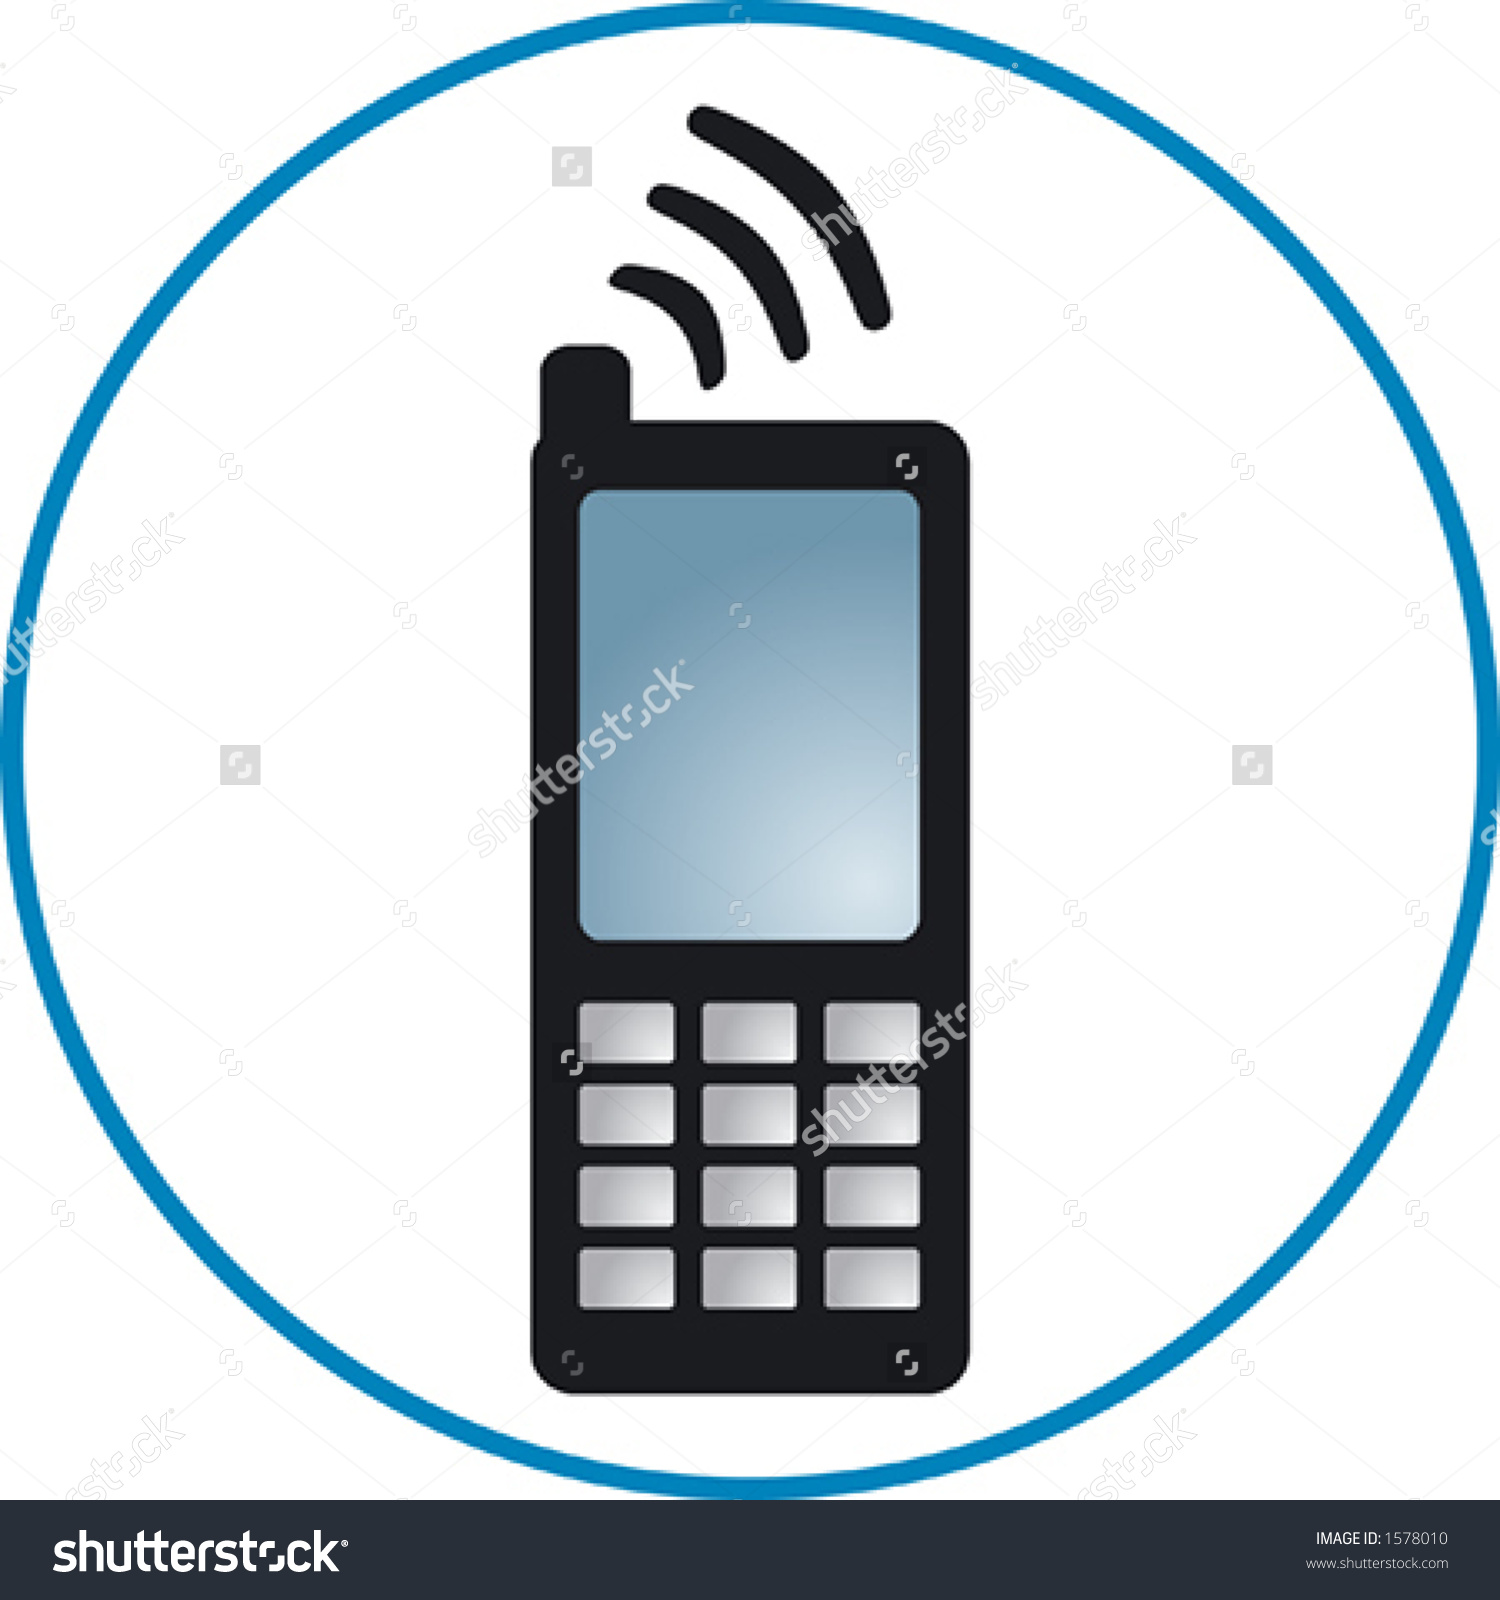 Cellphone Clipart Stock Vector 1578010.